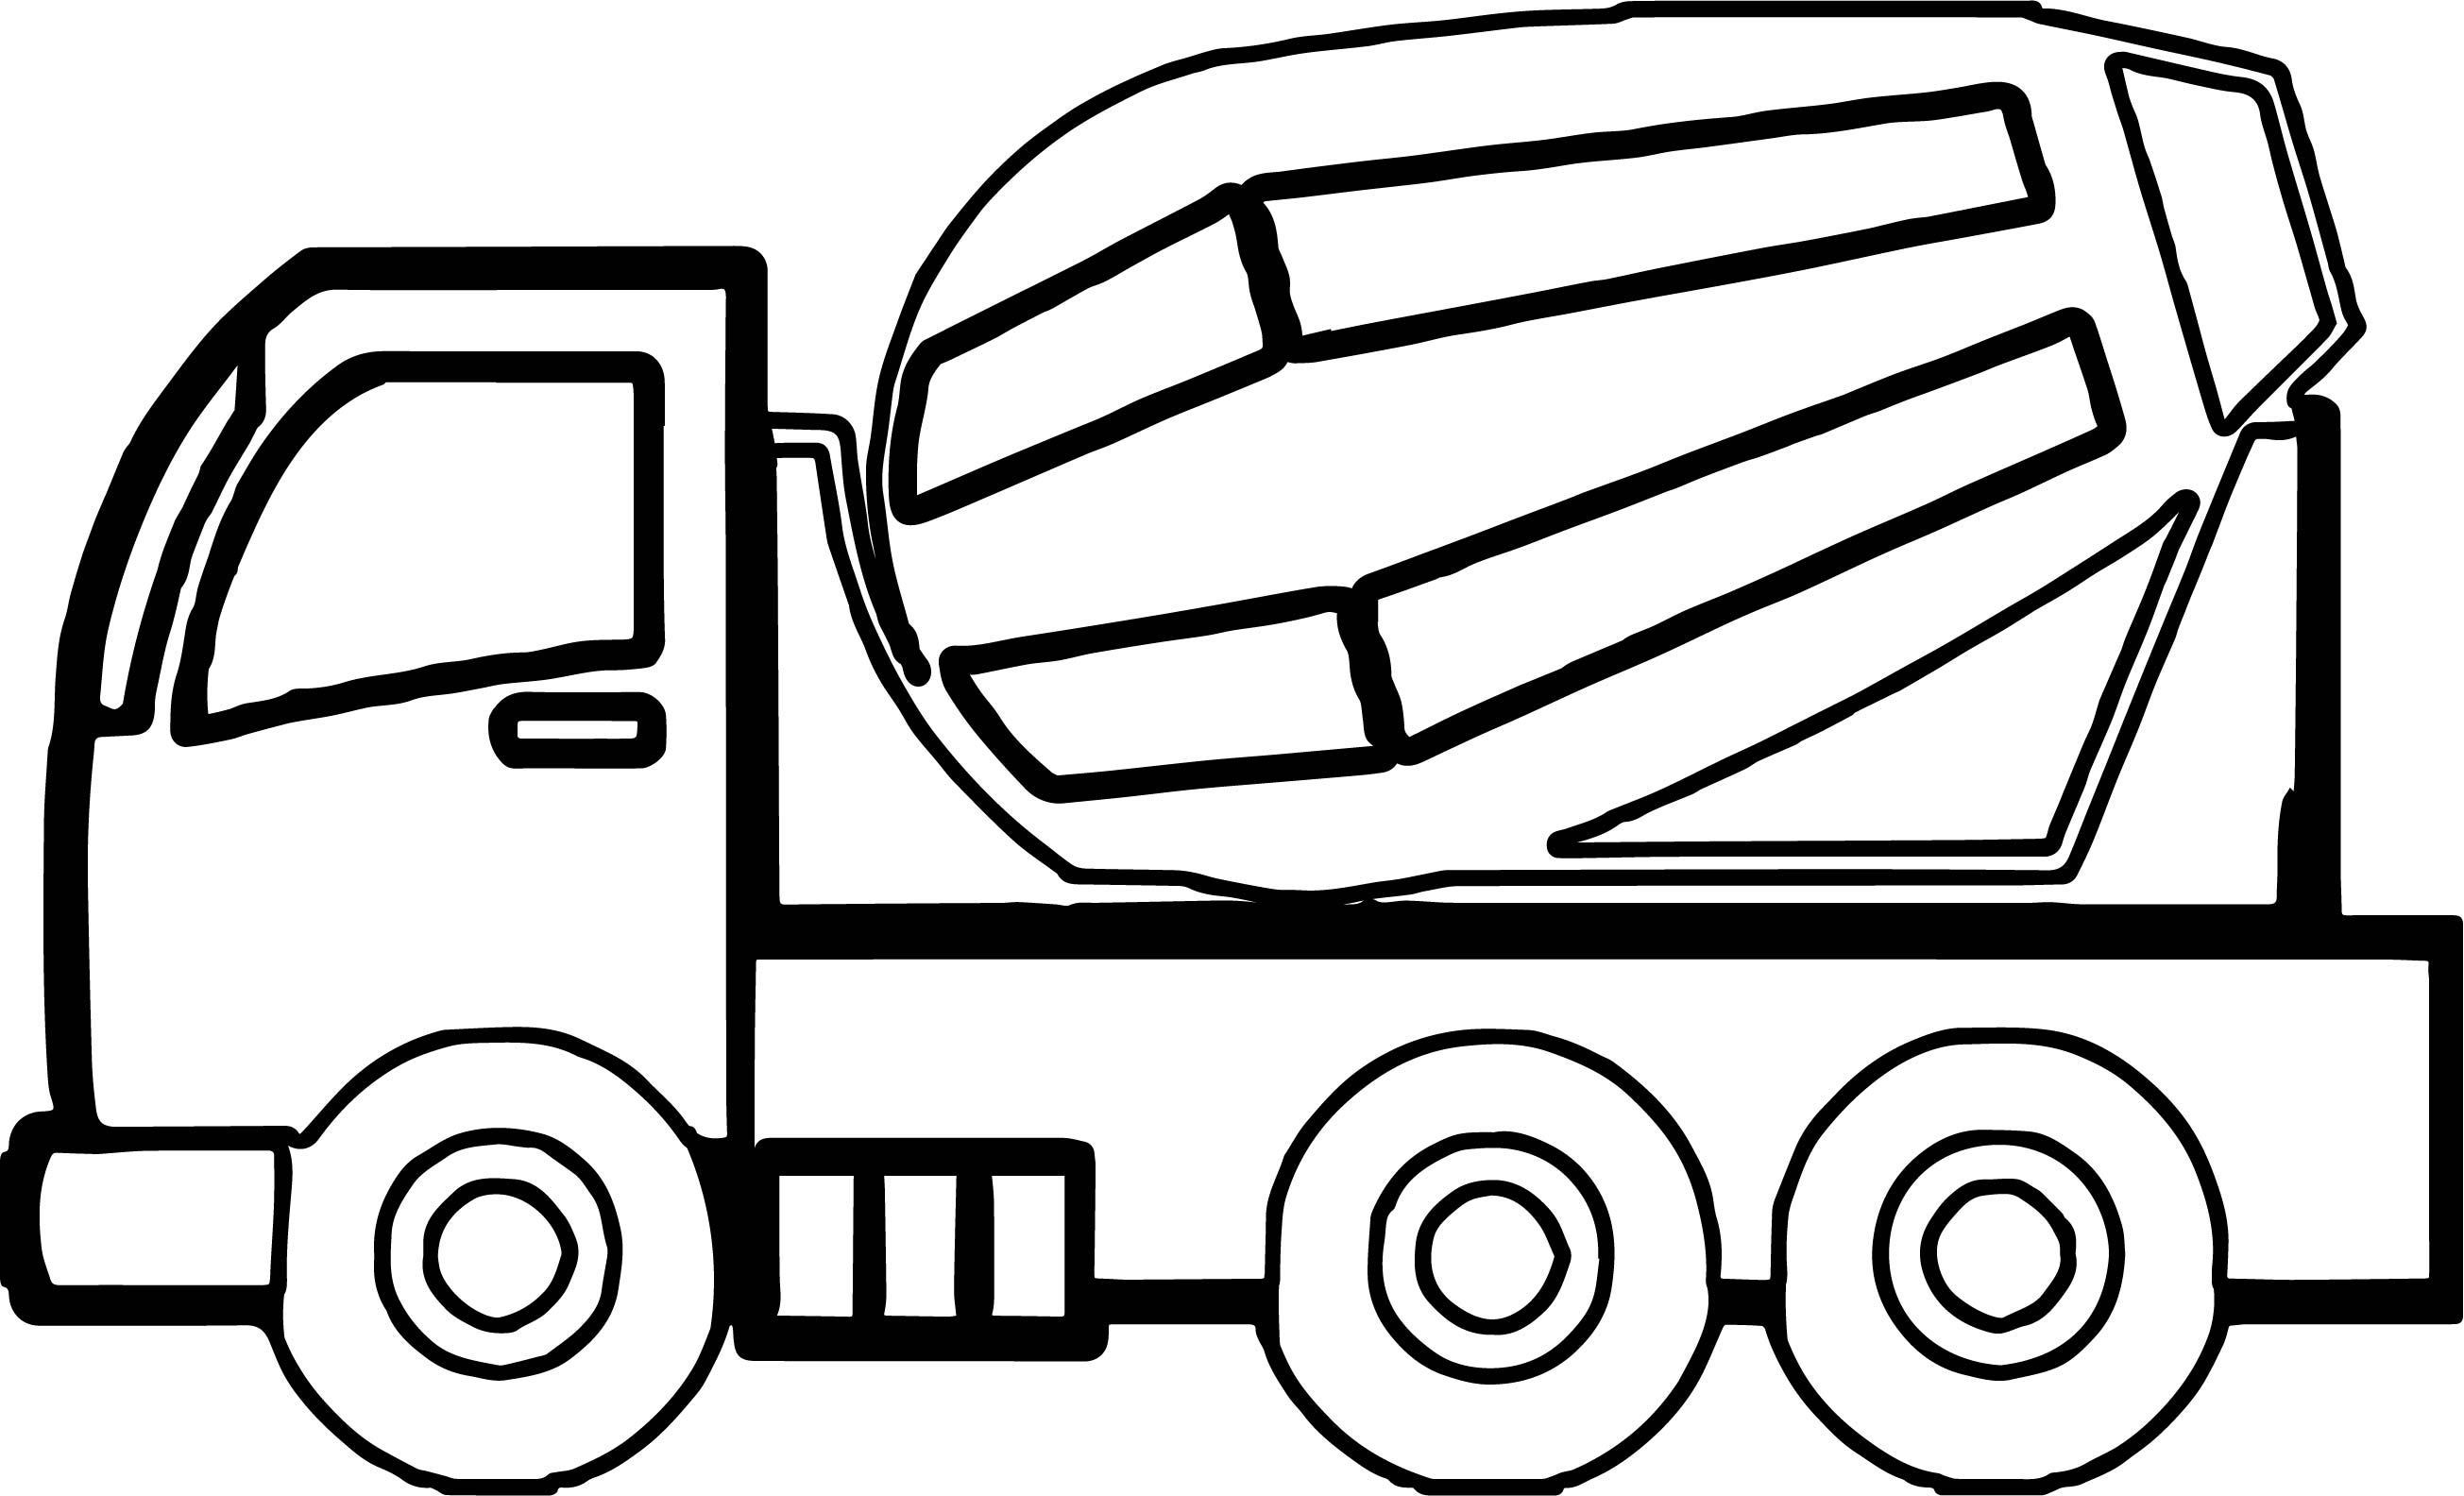 concrete mixer truck coloring pages - photo#19